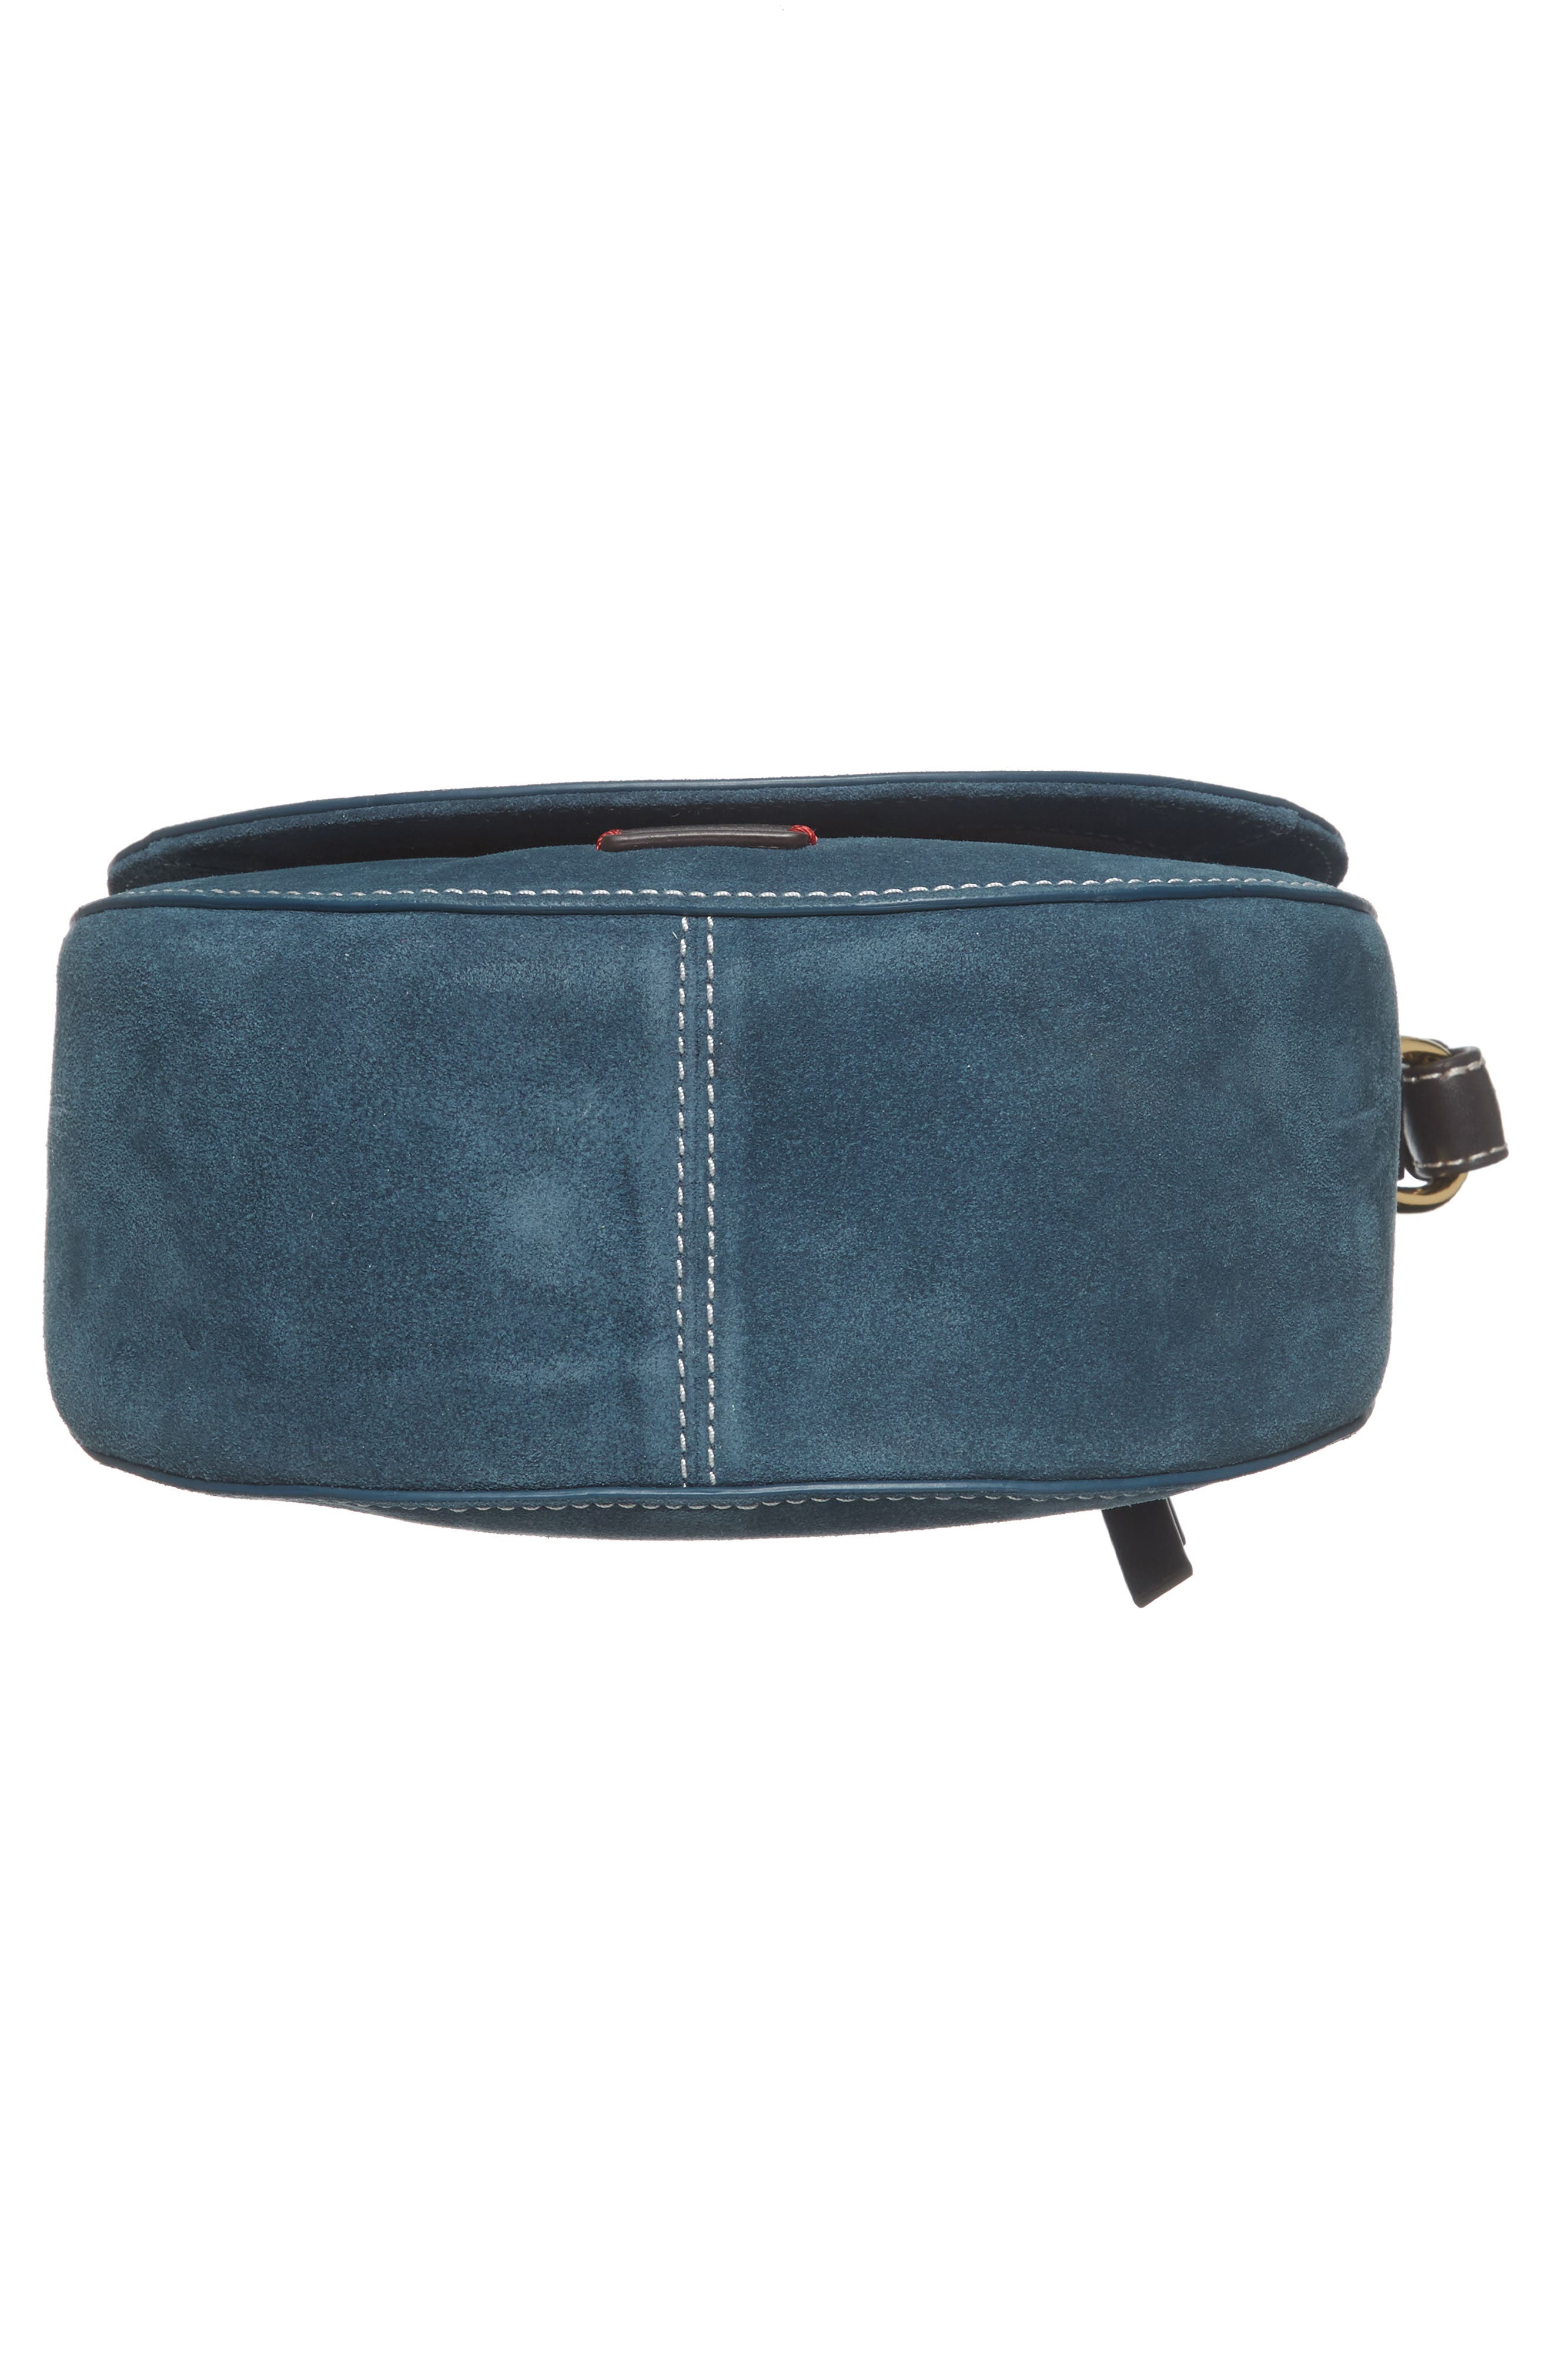 Mini Ellen Suede Crossbody Bag,                             Alternate thumbnail 6, color,                             Dark Teal